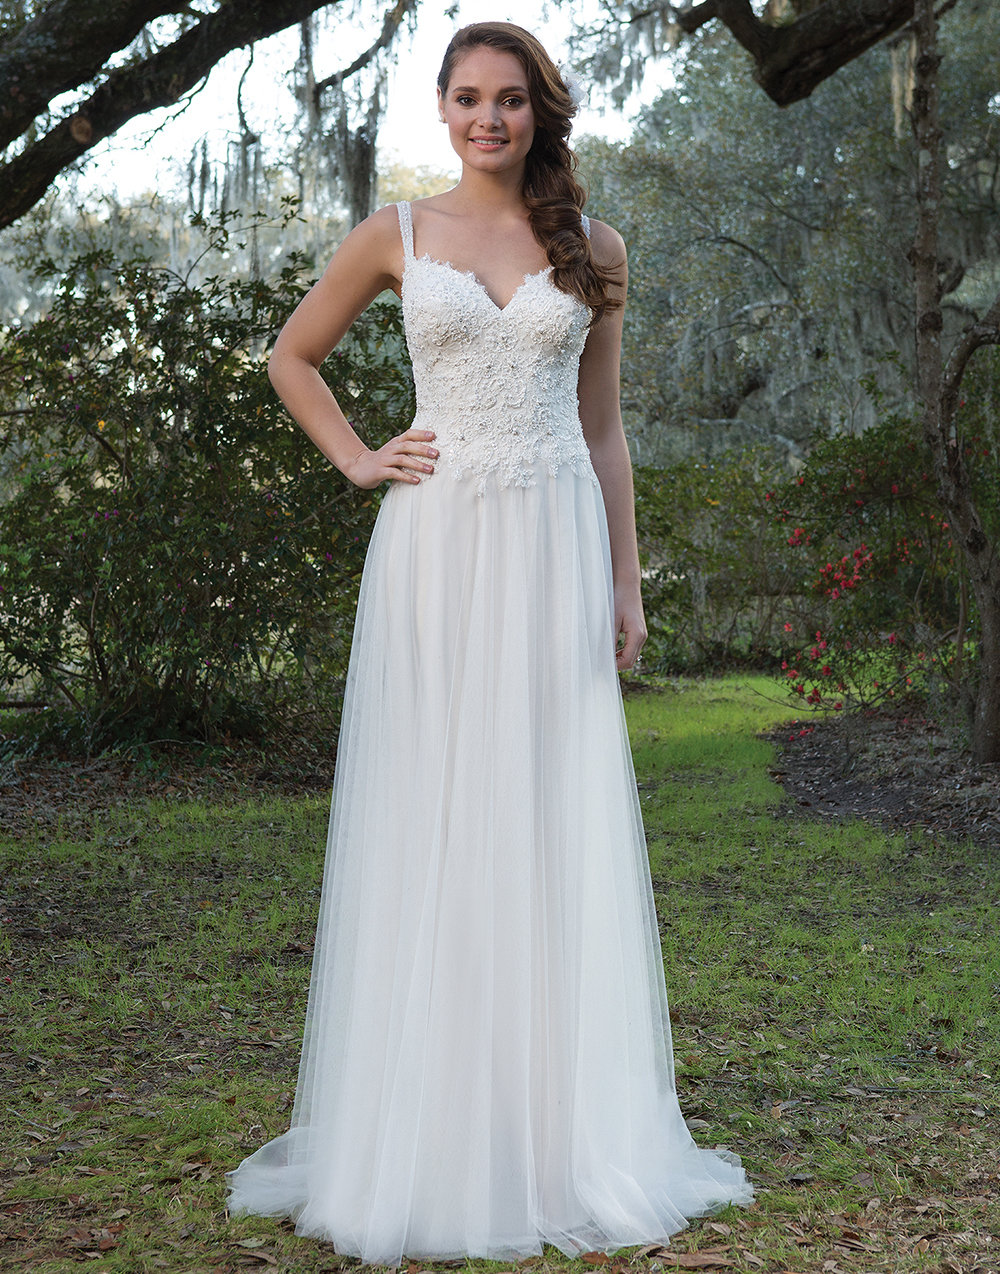 Sweetheart Gowns V-Neck with Sequined Lace Wedding Gown | Wedding ...